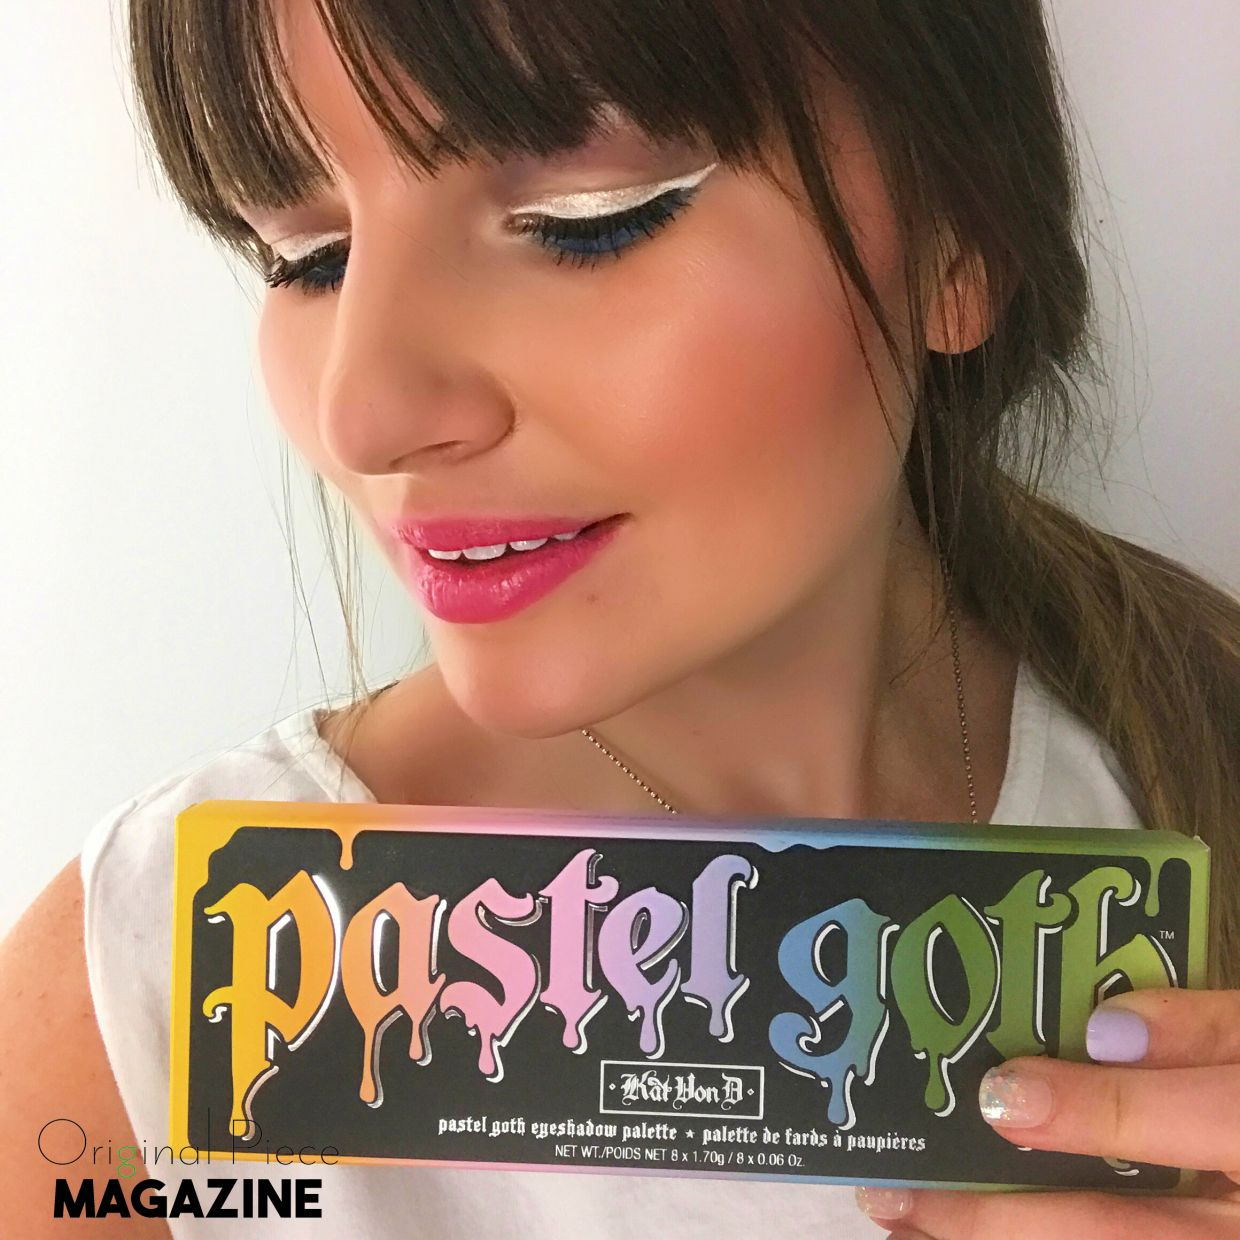 Pastel Goth was one of the first makeup palettes I got